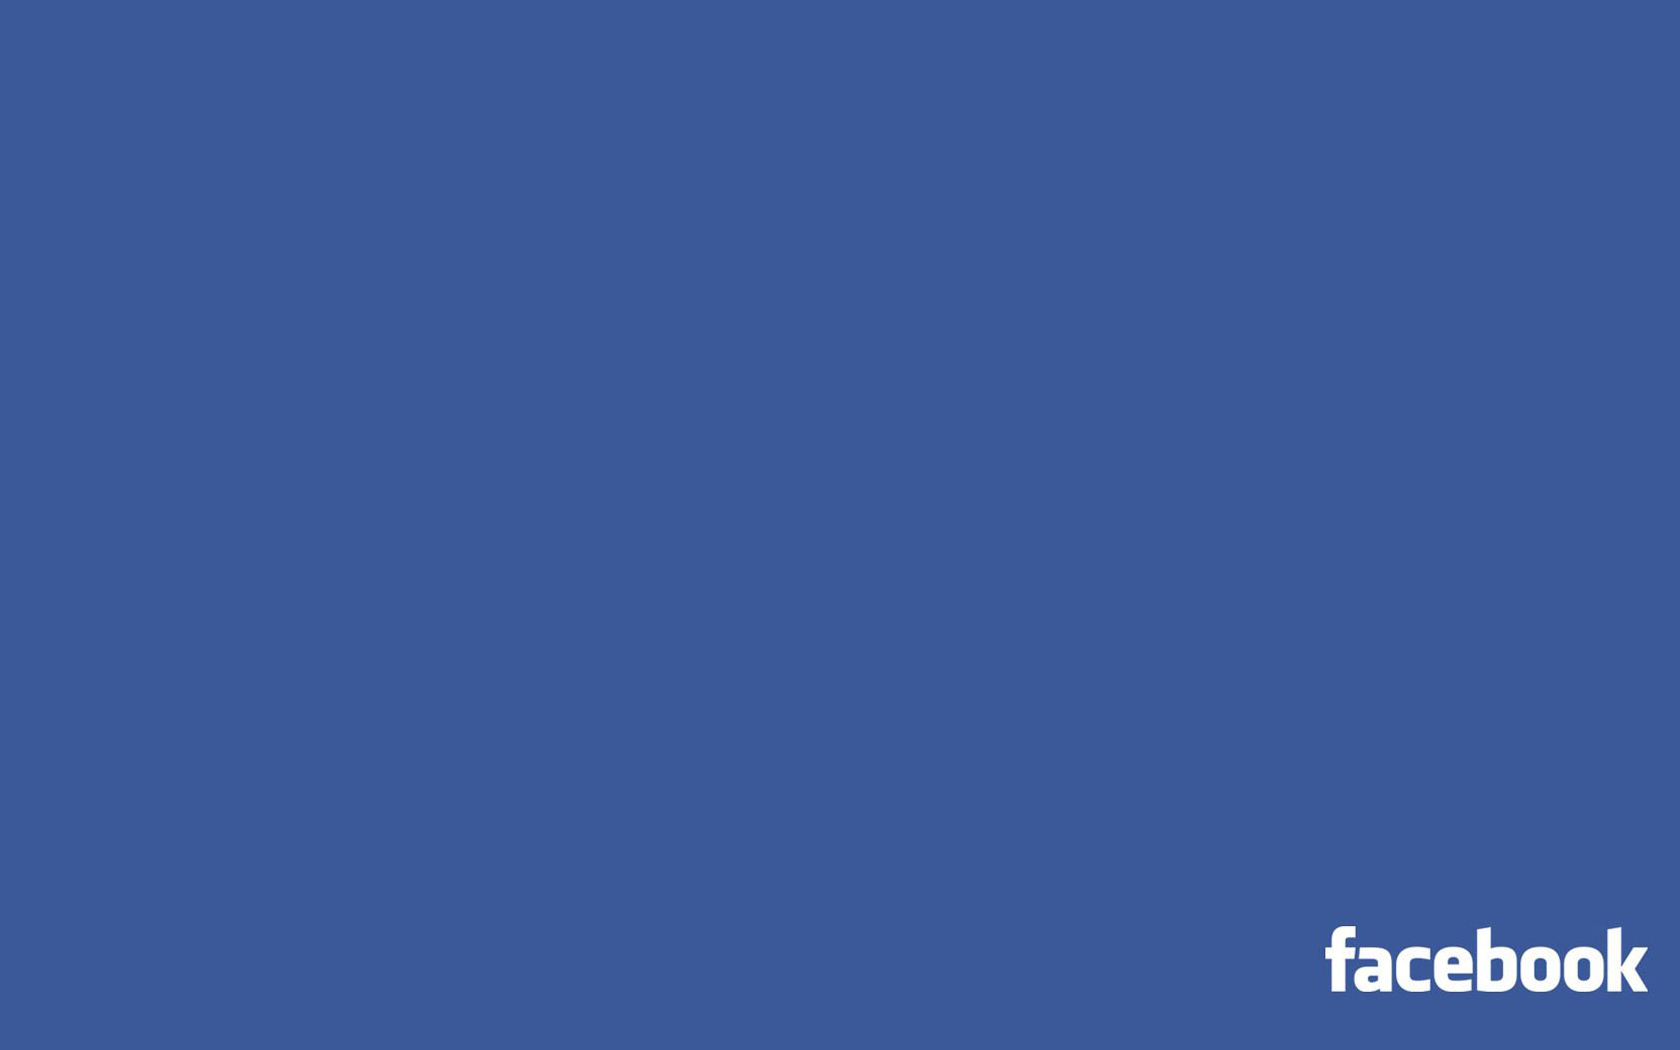 Facebook Minimalistic Background by VaughnWhiskey on DeviantArt ...